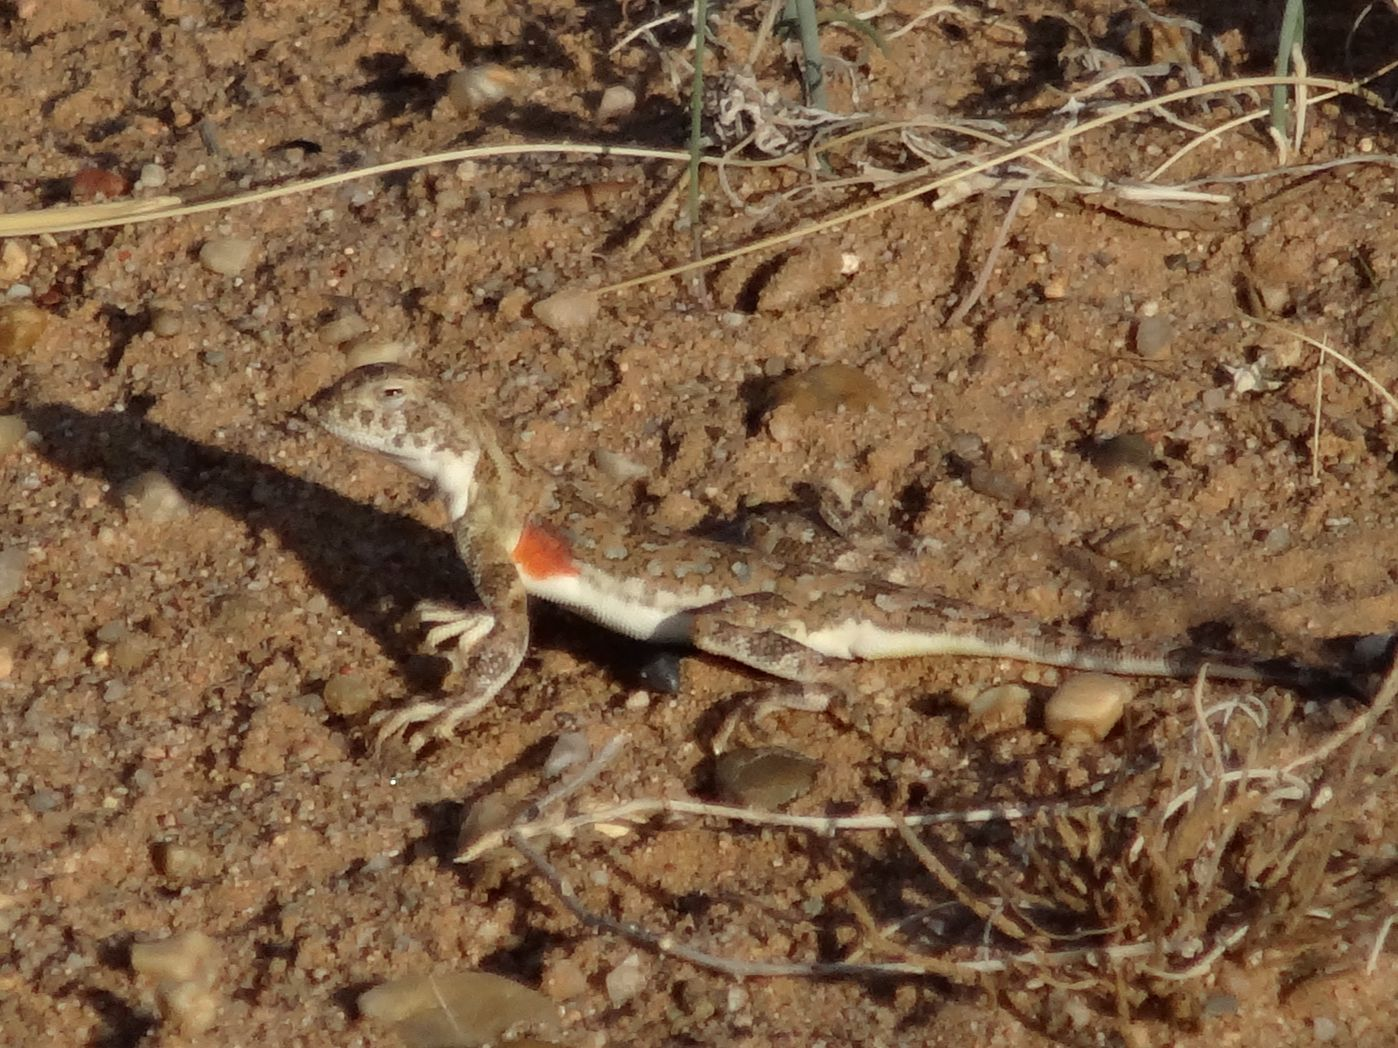 gorgeous little lizard in the desert sands near the border with Mongolia.